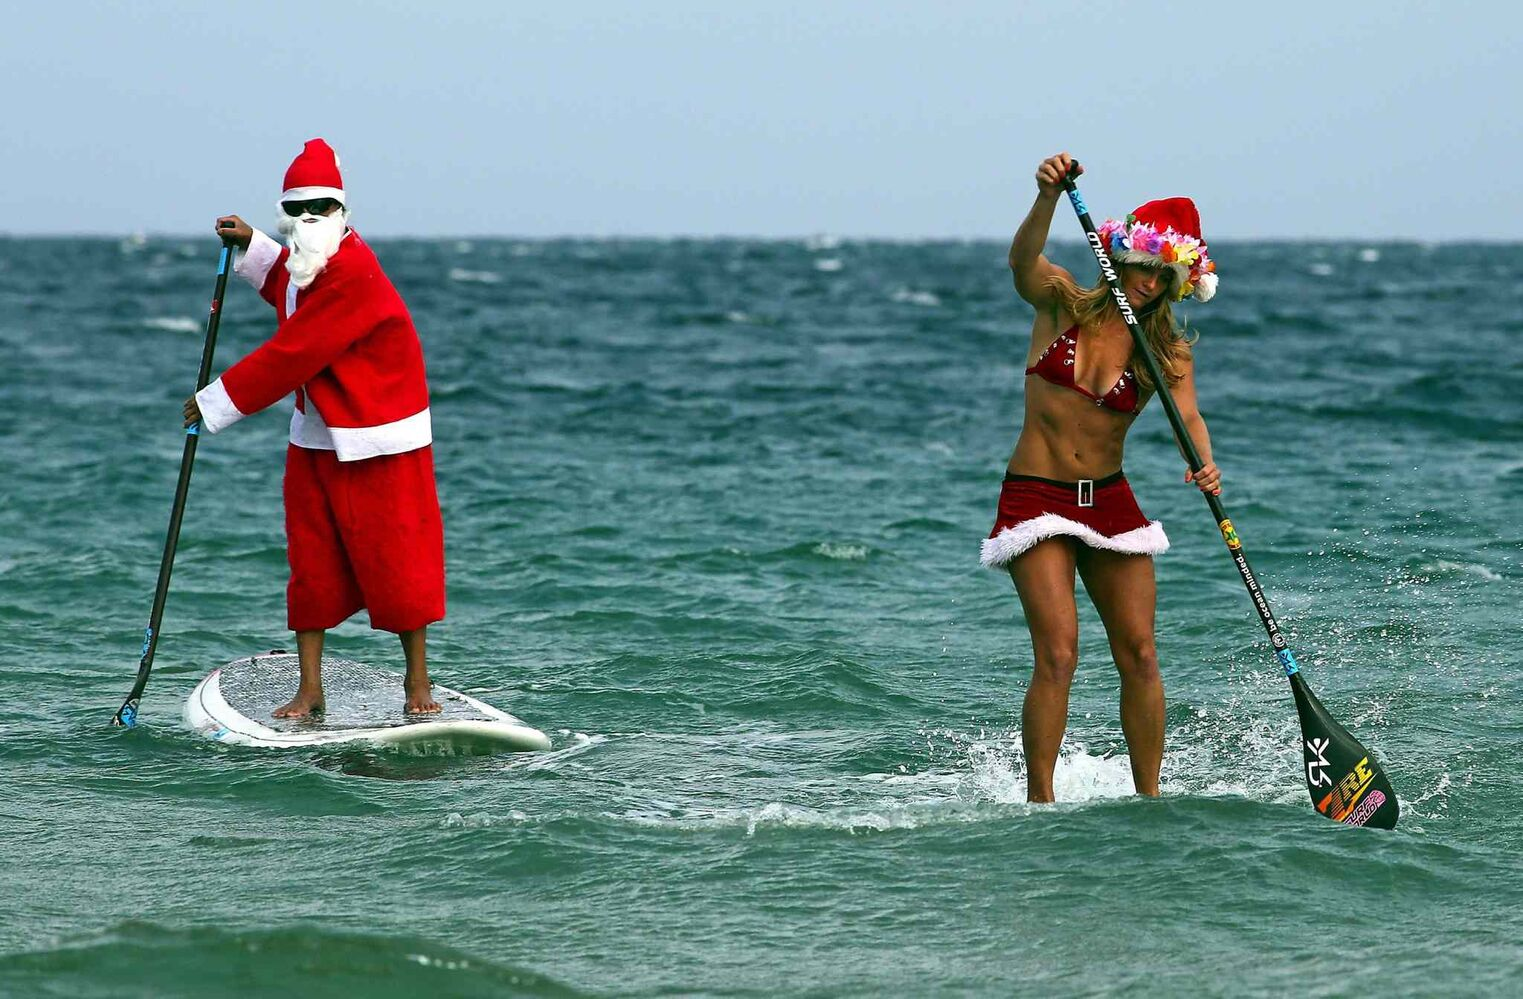 Santa and Mrs. Claus ride the waves off of Fort Lauderdale, Fla. (Mike Stocker / Tribune Media MCT)